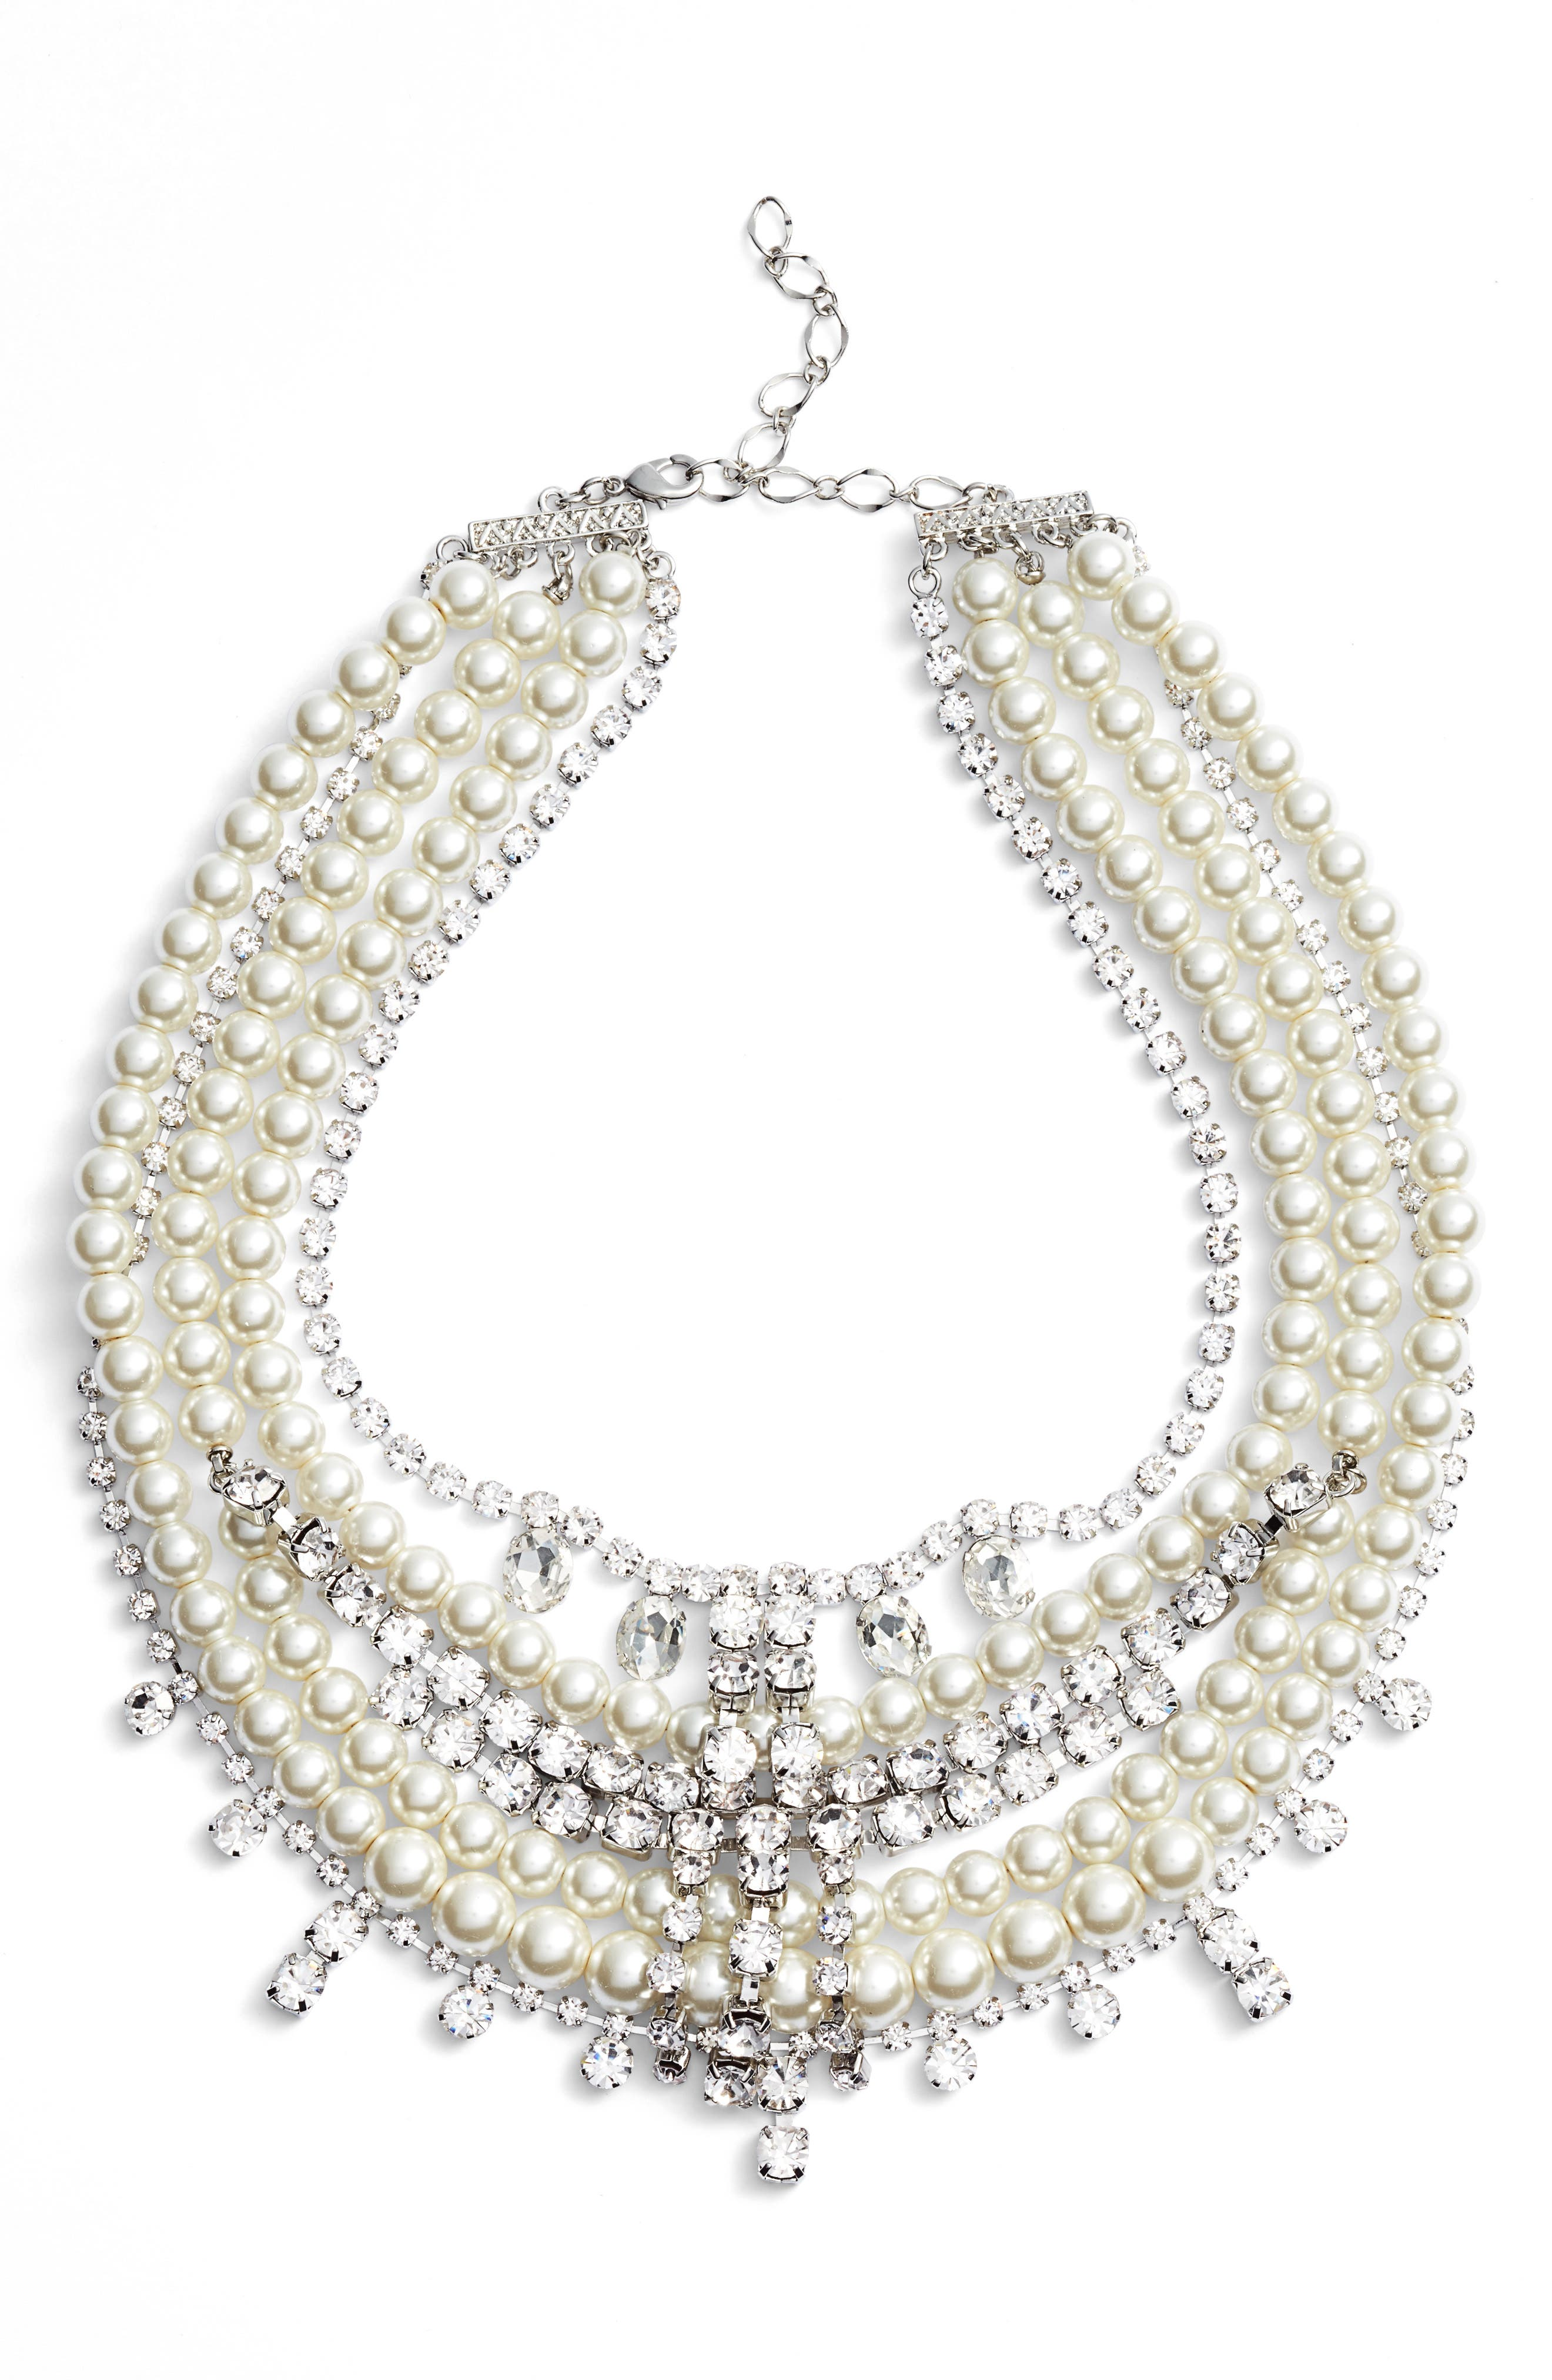 Main Image - CRISTABELLE Crystal & Imitation Pearl Multistrand Necklace